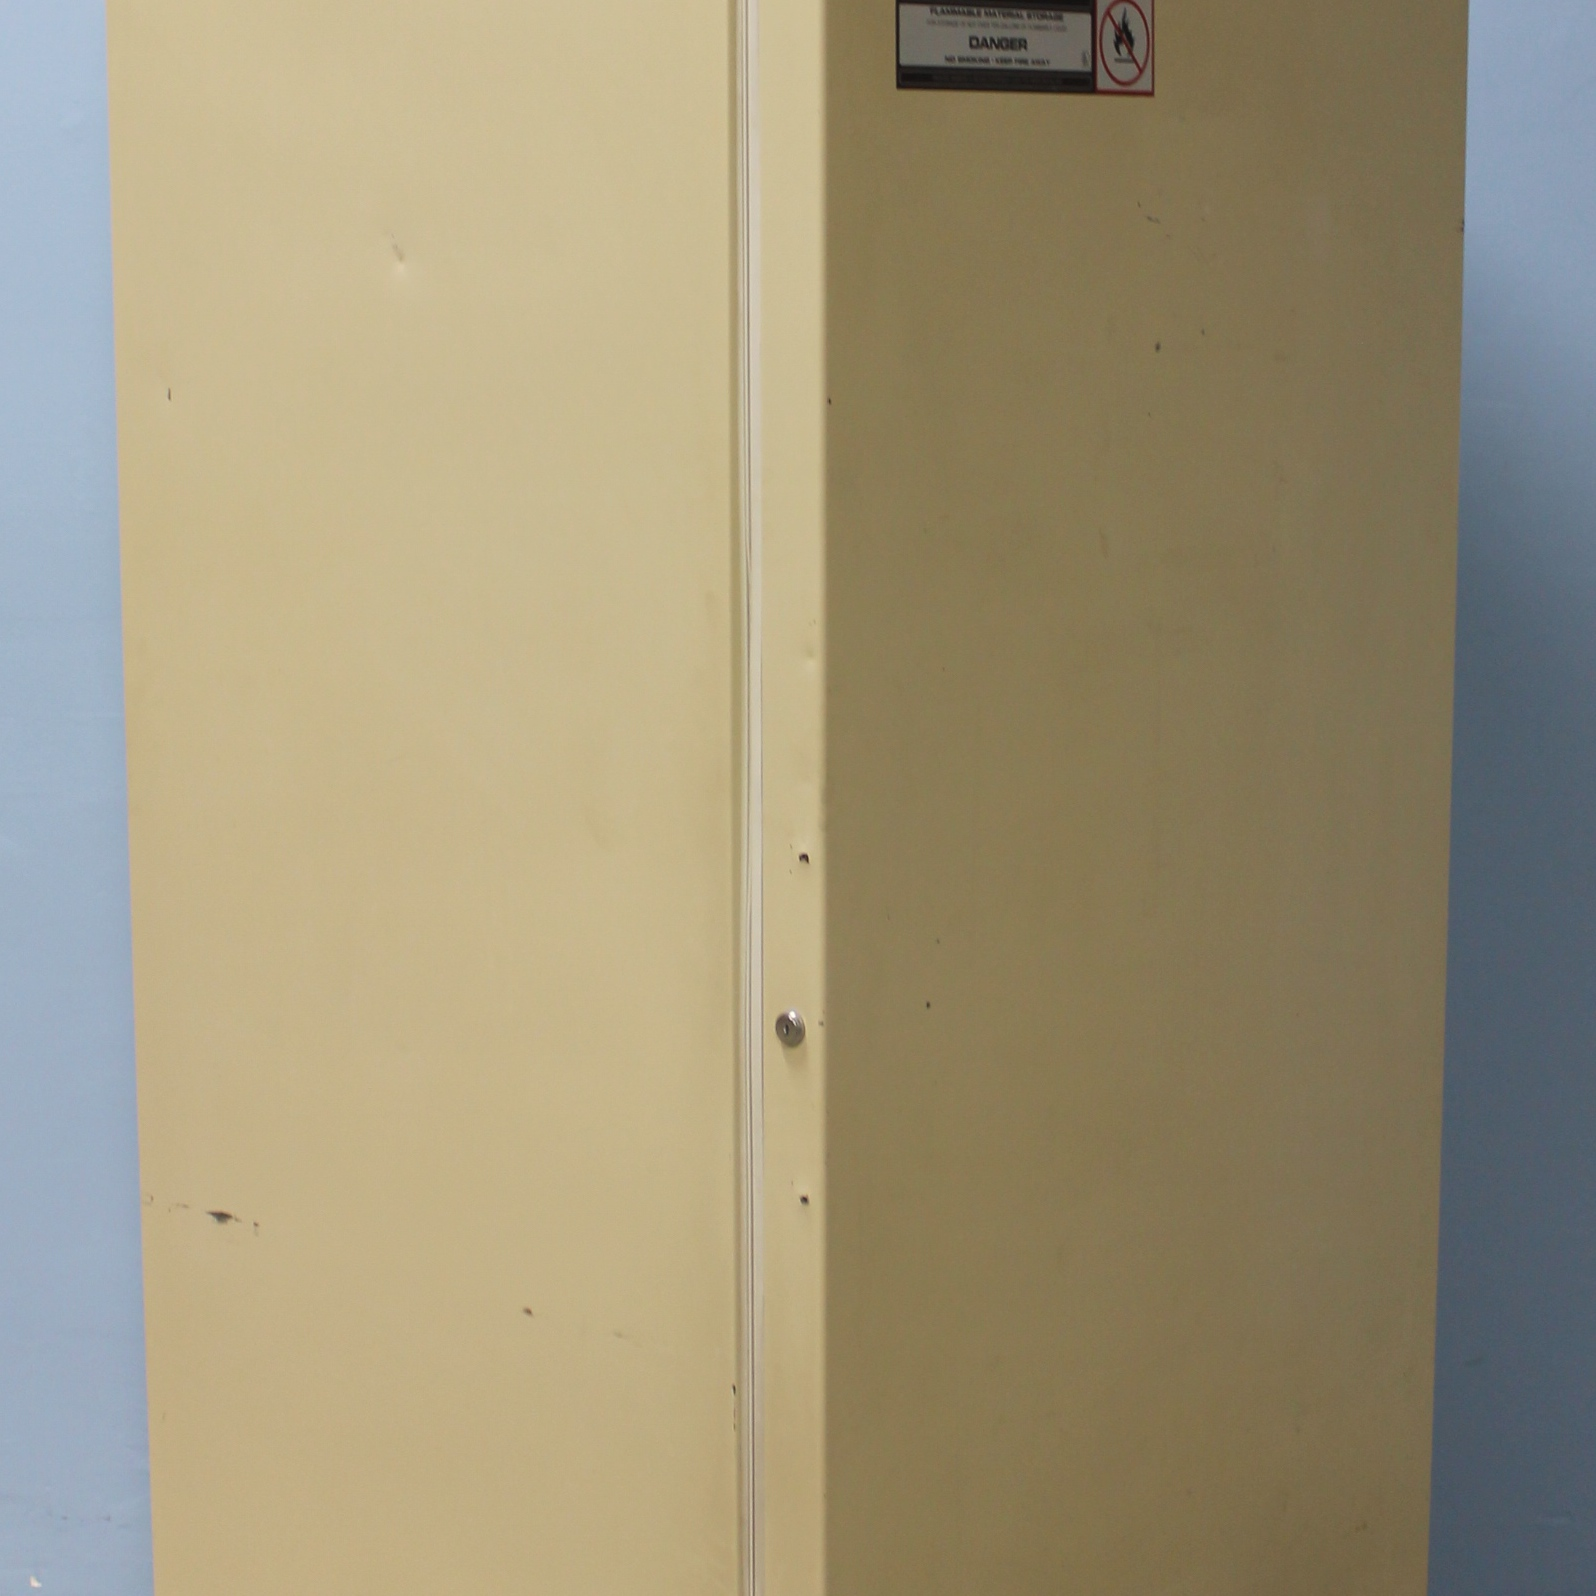 Fisher Scientific Isotemp Flammable Material Storage Freezer Model 425F Image